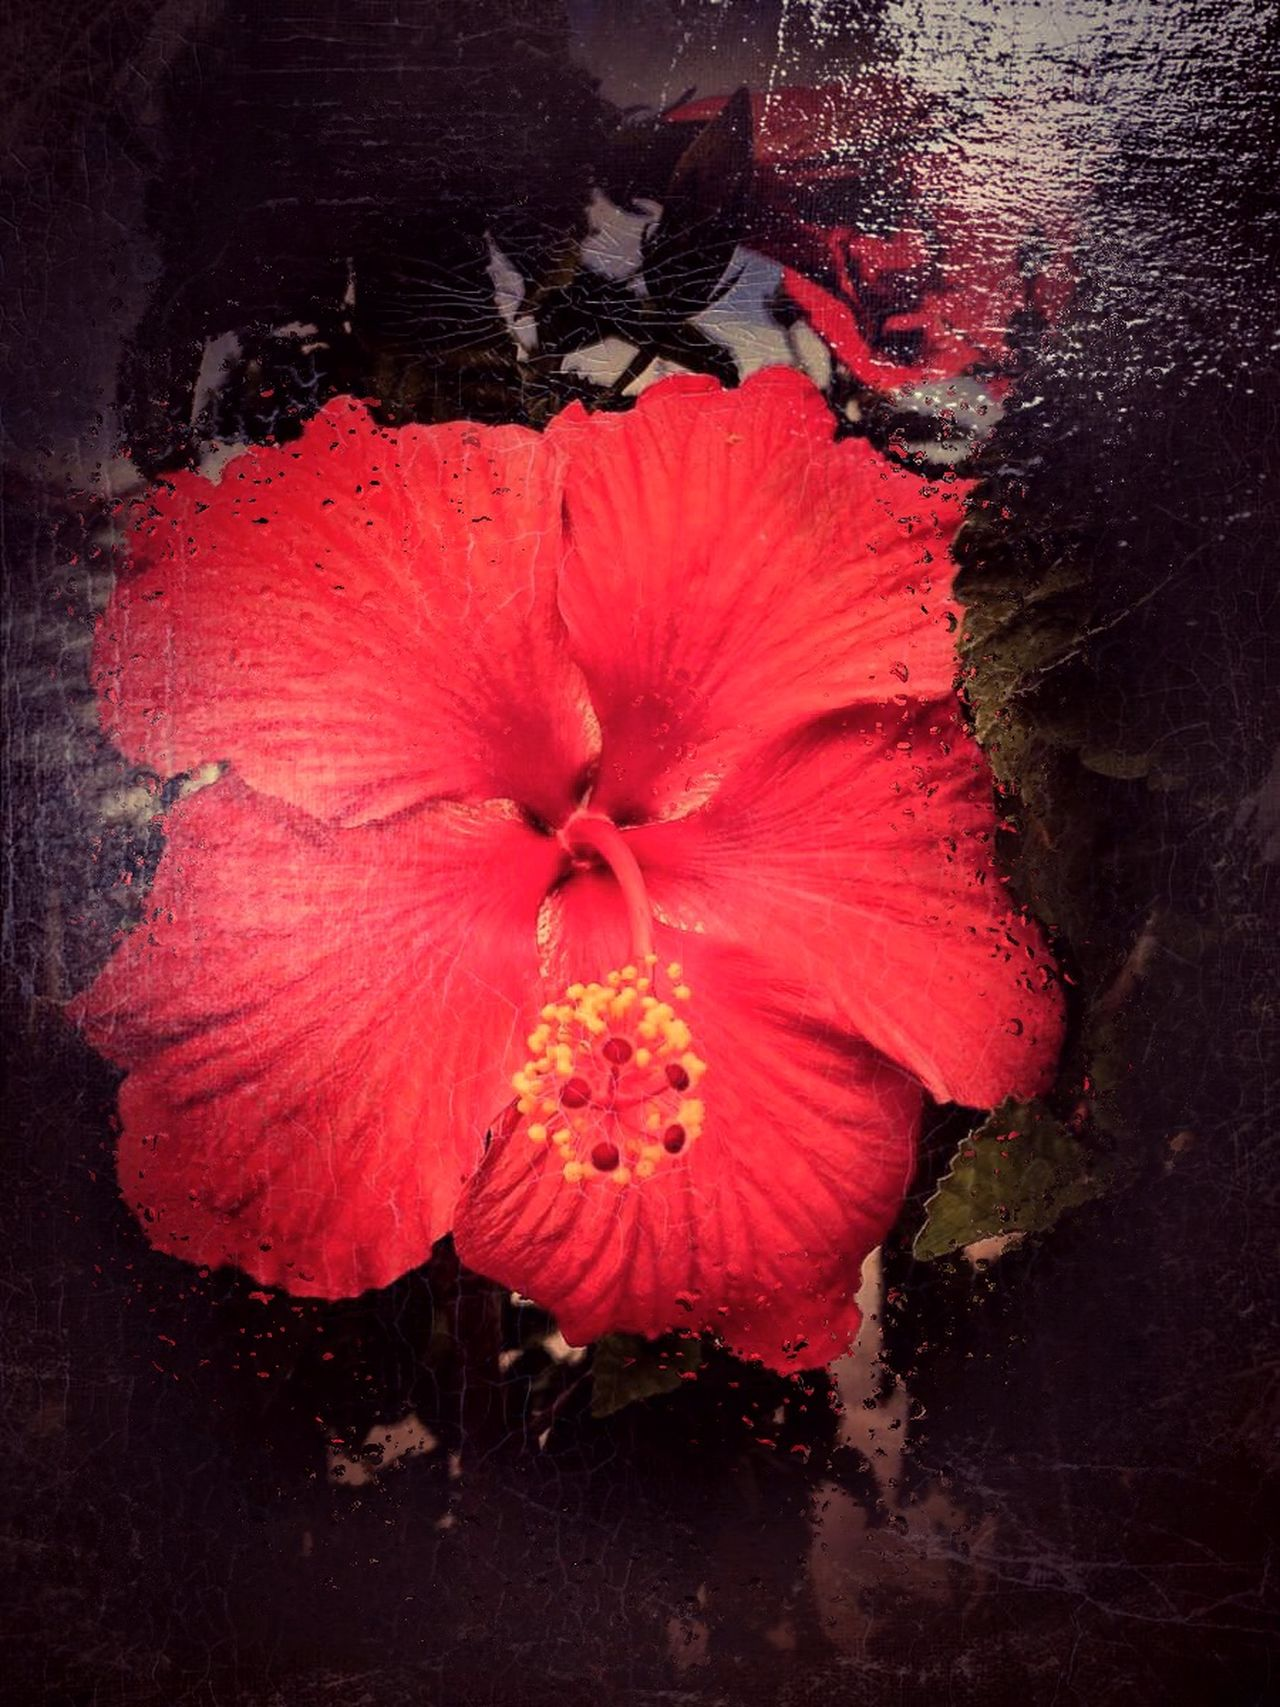 Spotted this beauty in front of the Mystic Aquarium, Mystic, CT. Shot & Edited on iPhone 6plus www.eSantosStudios.com 24-Sept-2015. Flowers Flower Flowerporn Flower Collection Flower Porn Flowers,Plants & Garden Flowerpower Flowerlovers Spring Flowers Flowers_collection